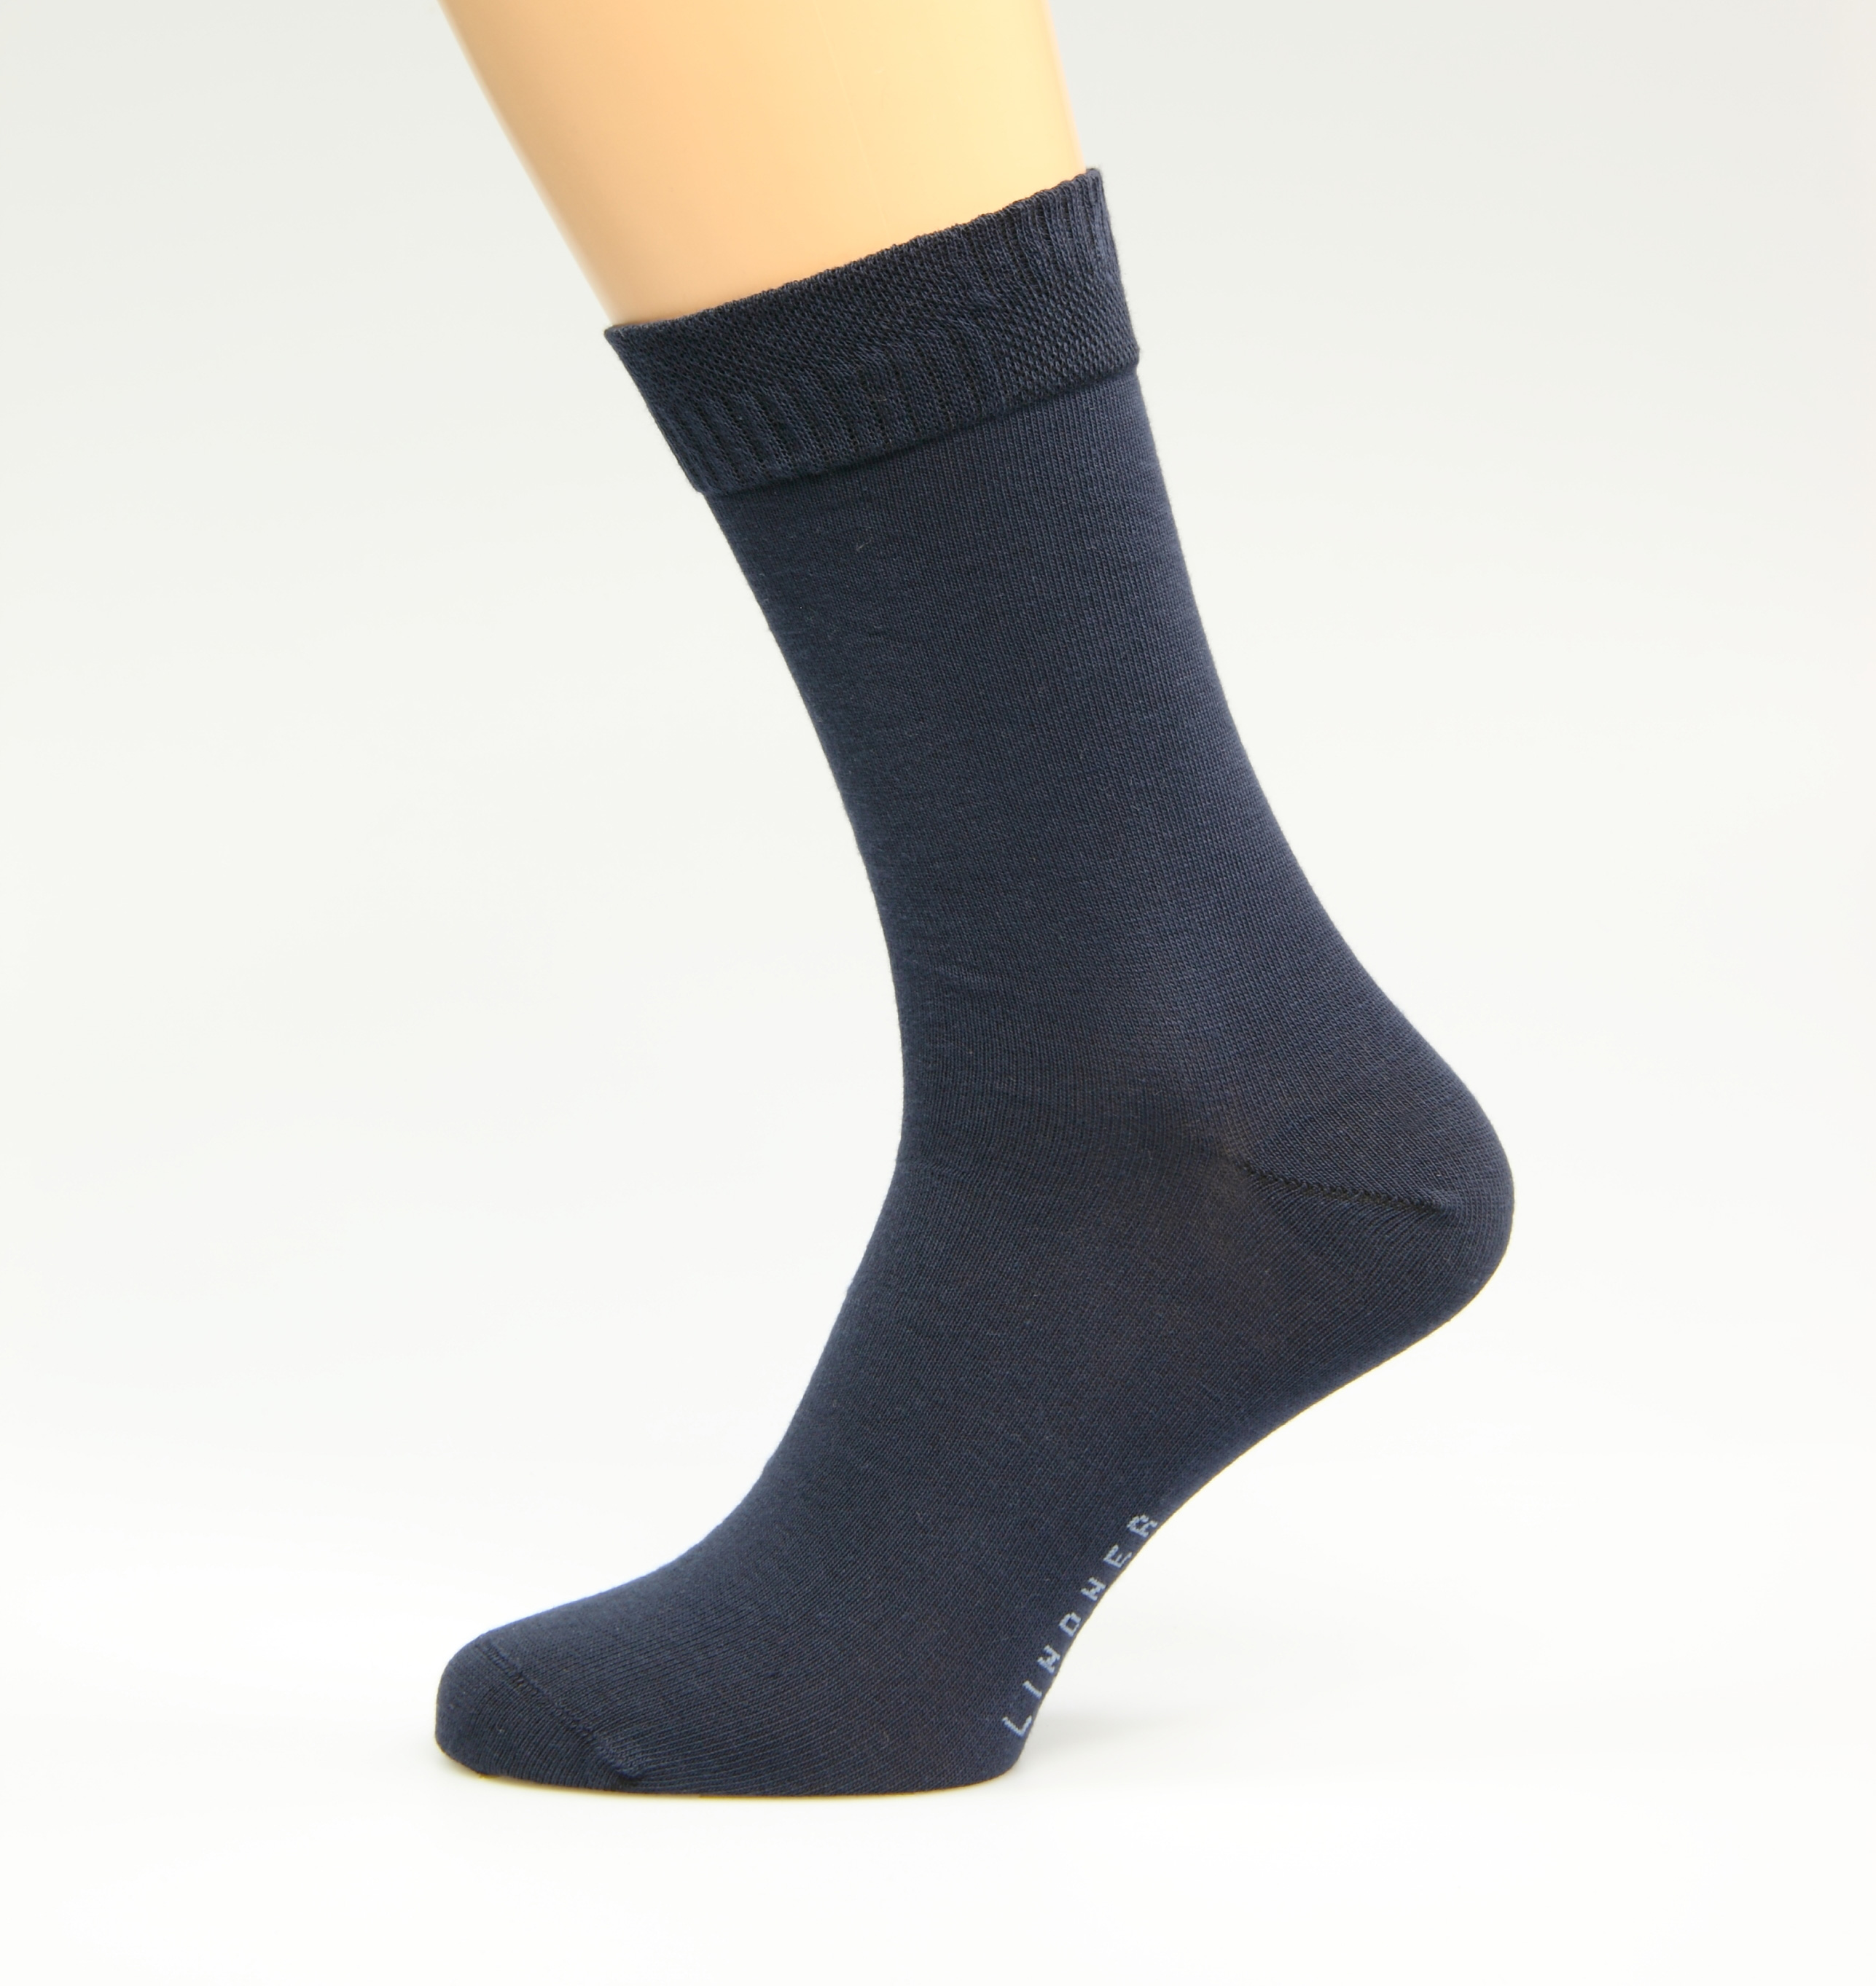 diabetikersocken blau gr e 48 50 socken vom hersteller onlineshop. Black Bedroom Furniture Sets. Home Design Ideas